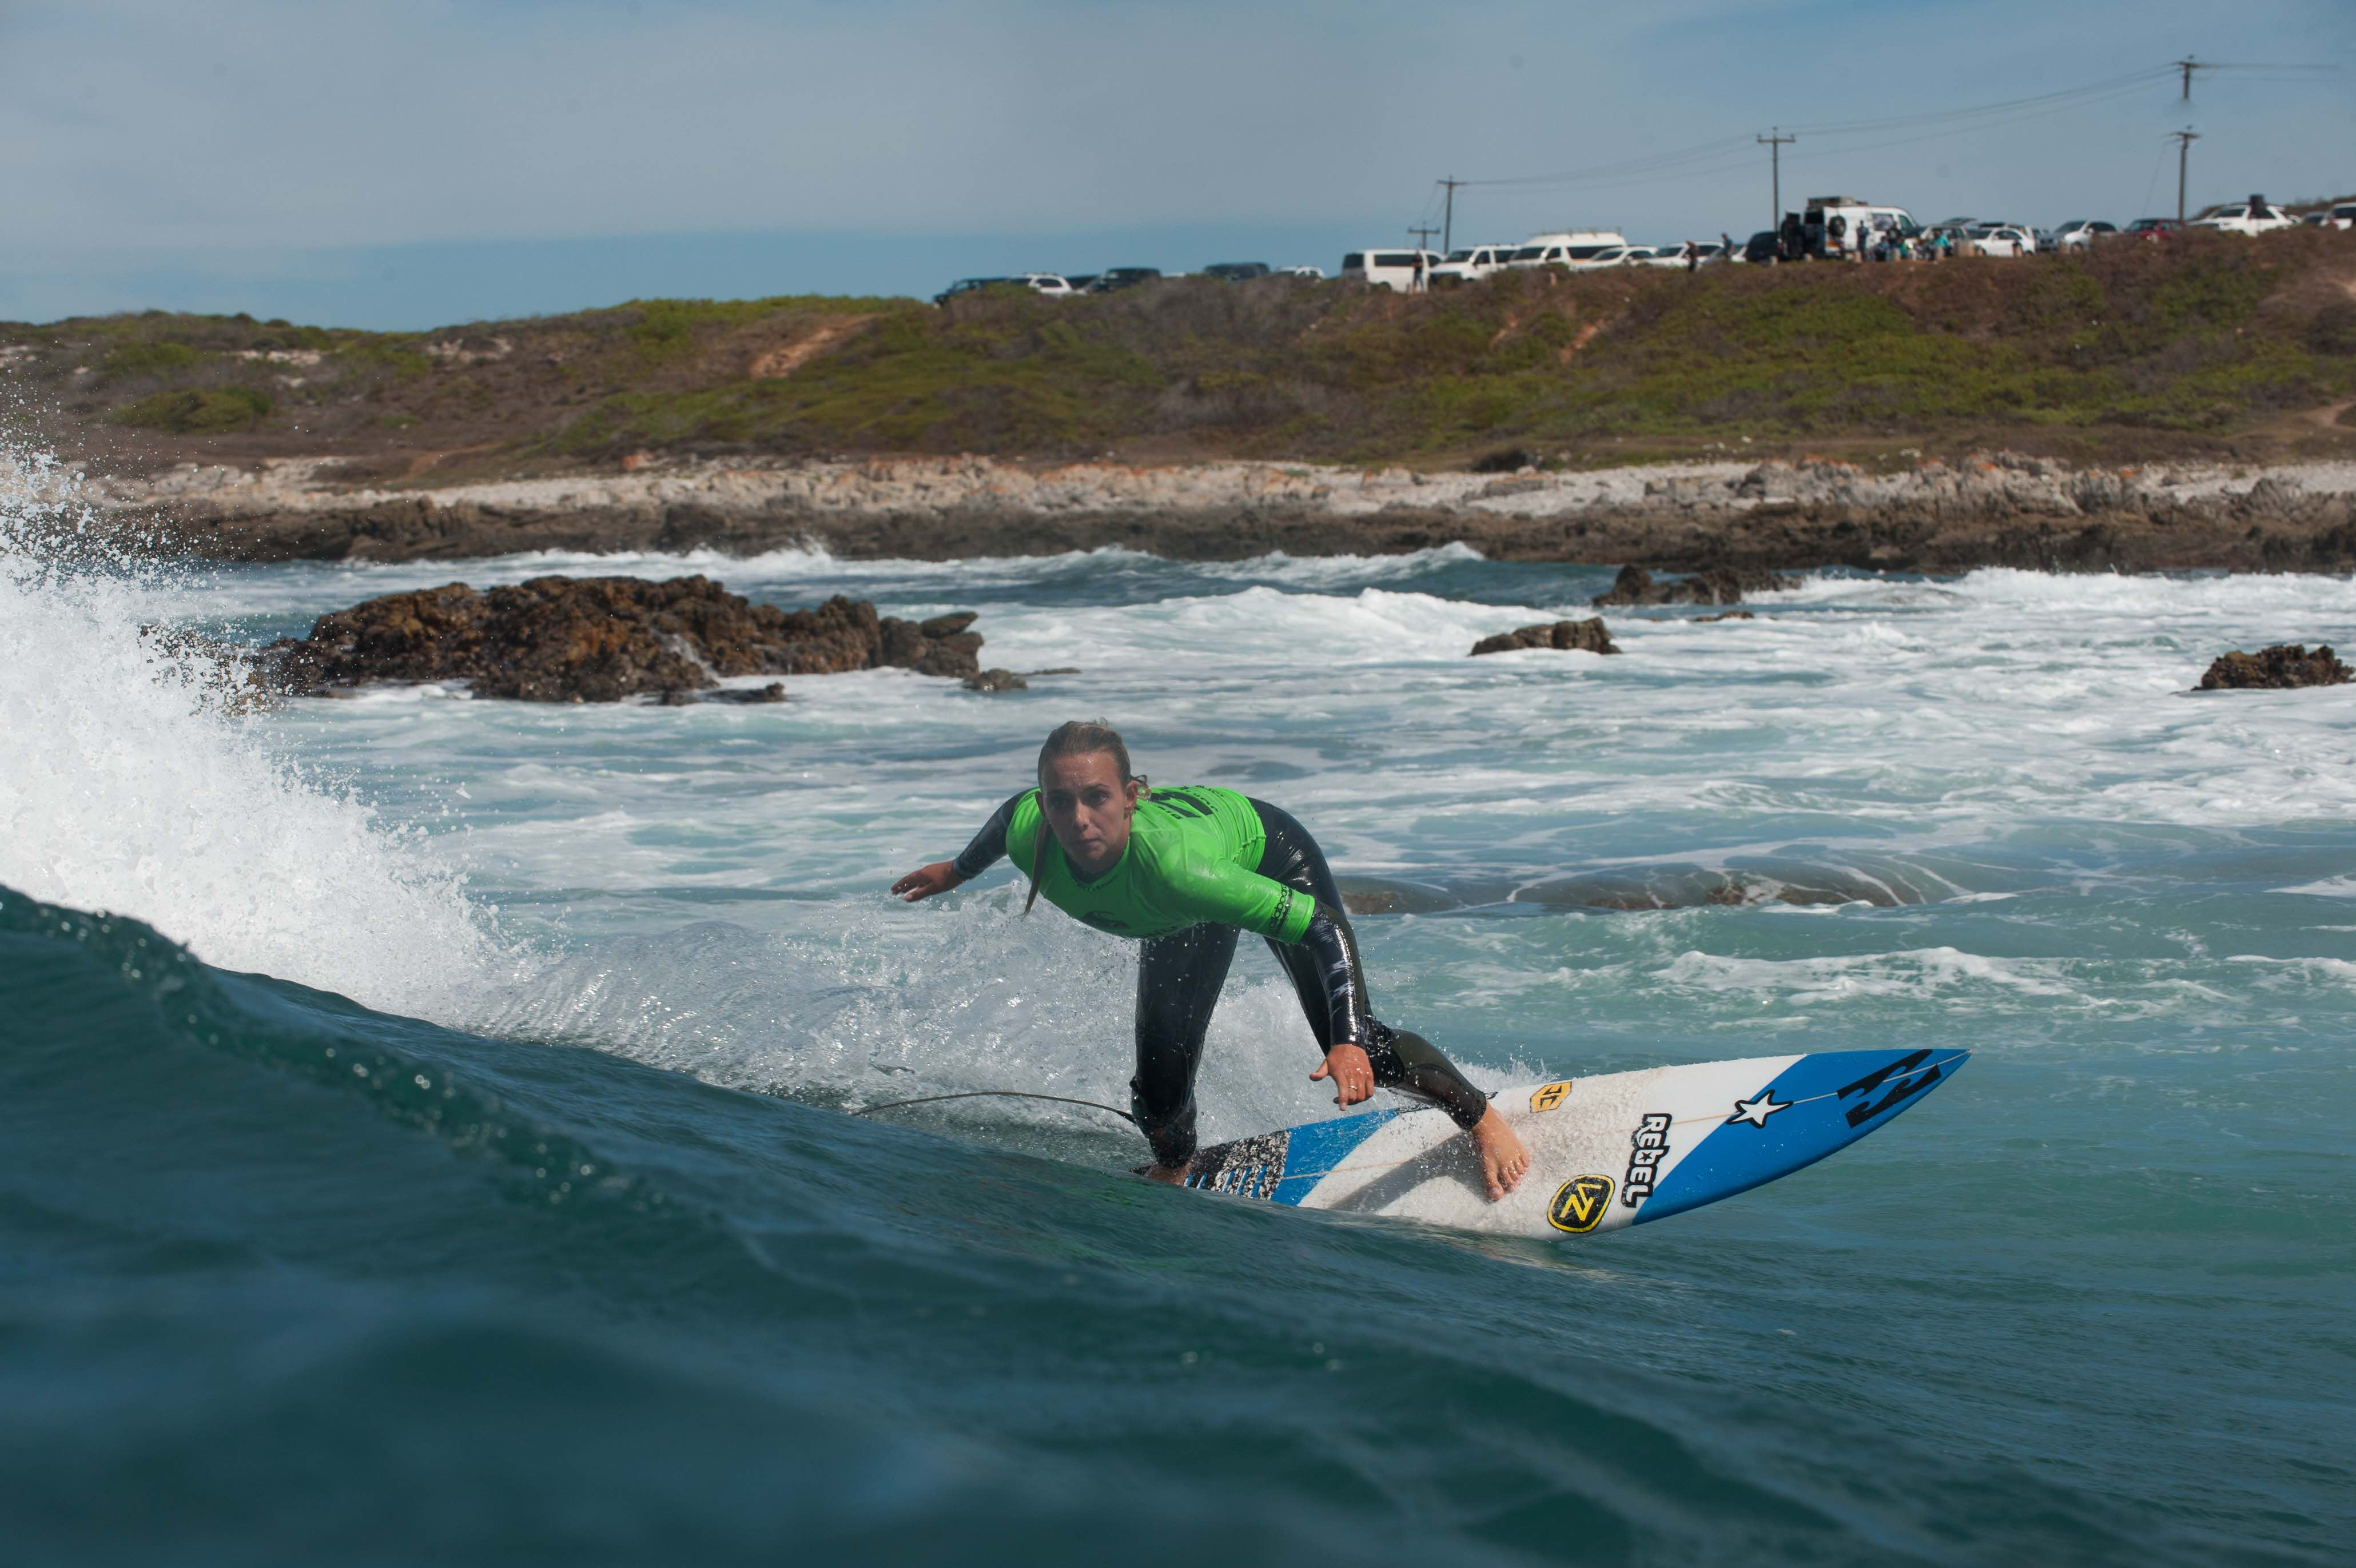 Surfing at its best at the Billabong Junior Series